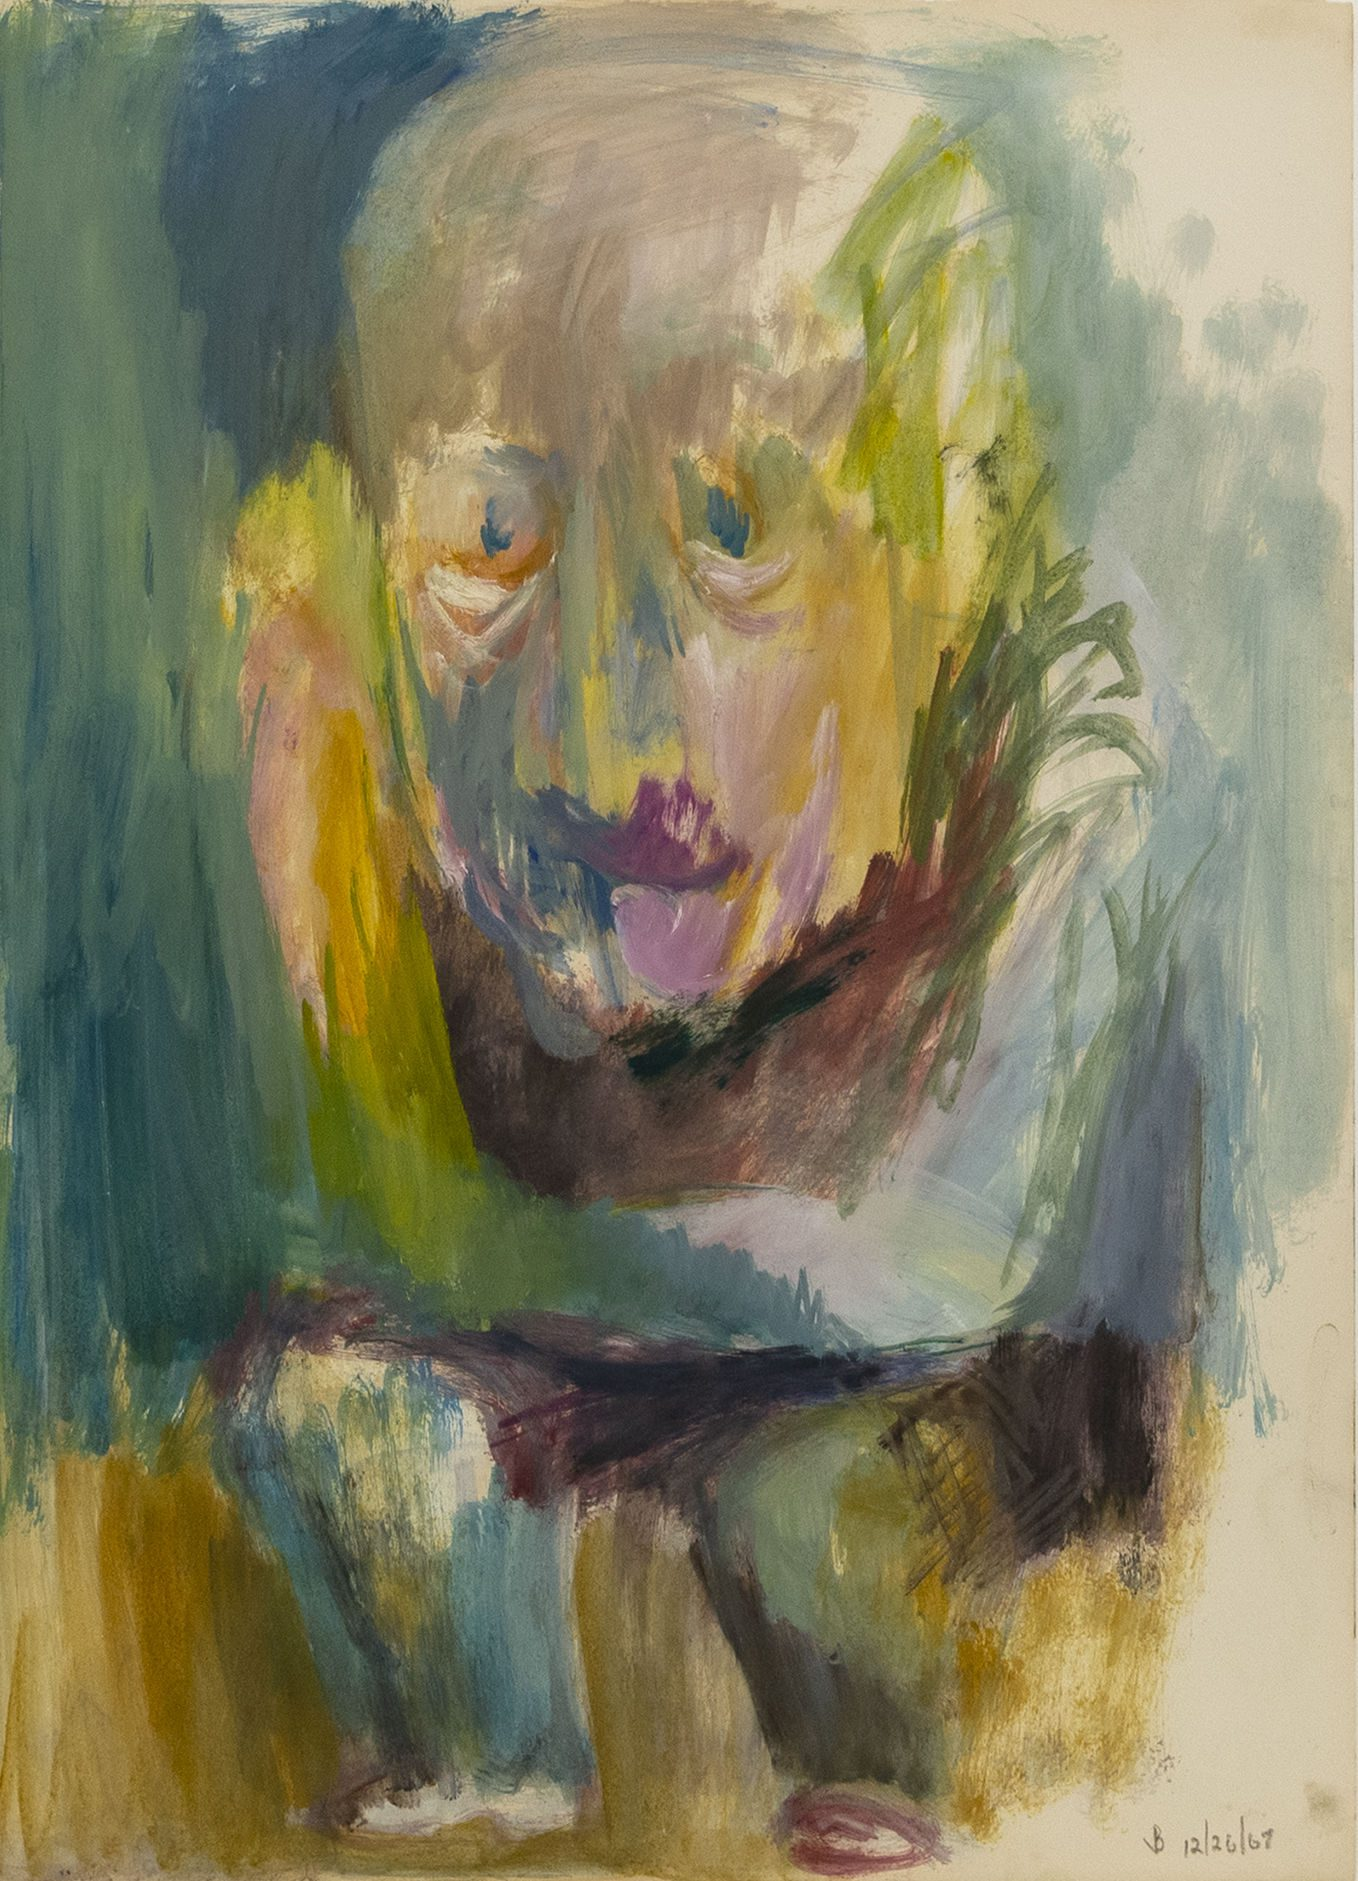 Little Men #92, 1967, Acrylic on paper, 23 3/4 x 17 1/8 inches (60.3 x 43.5 cm)